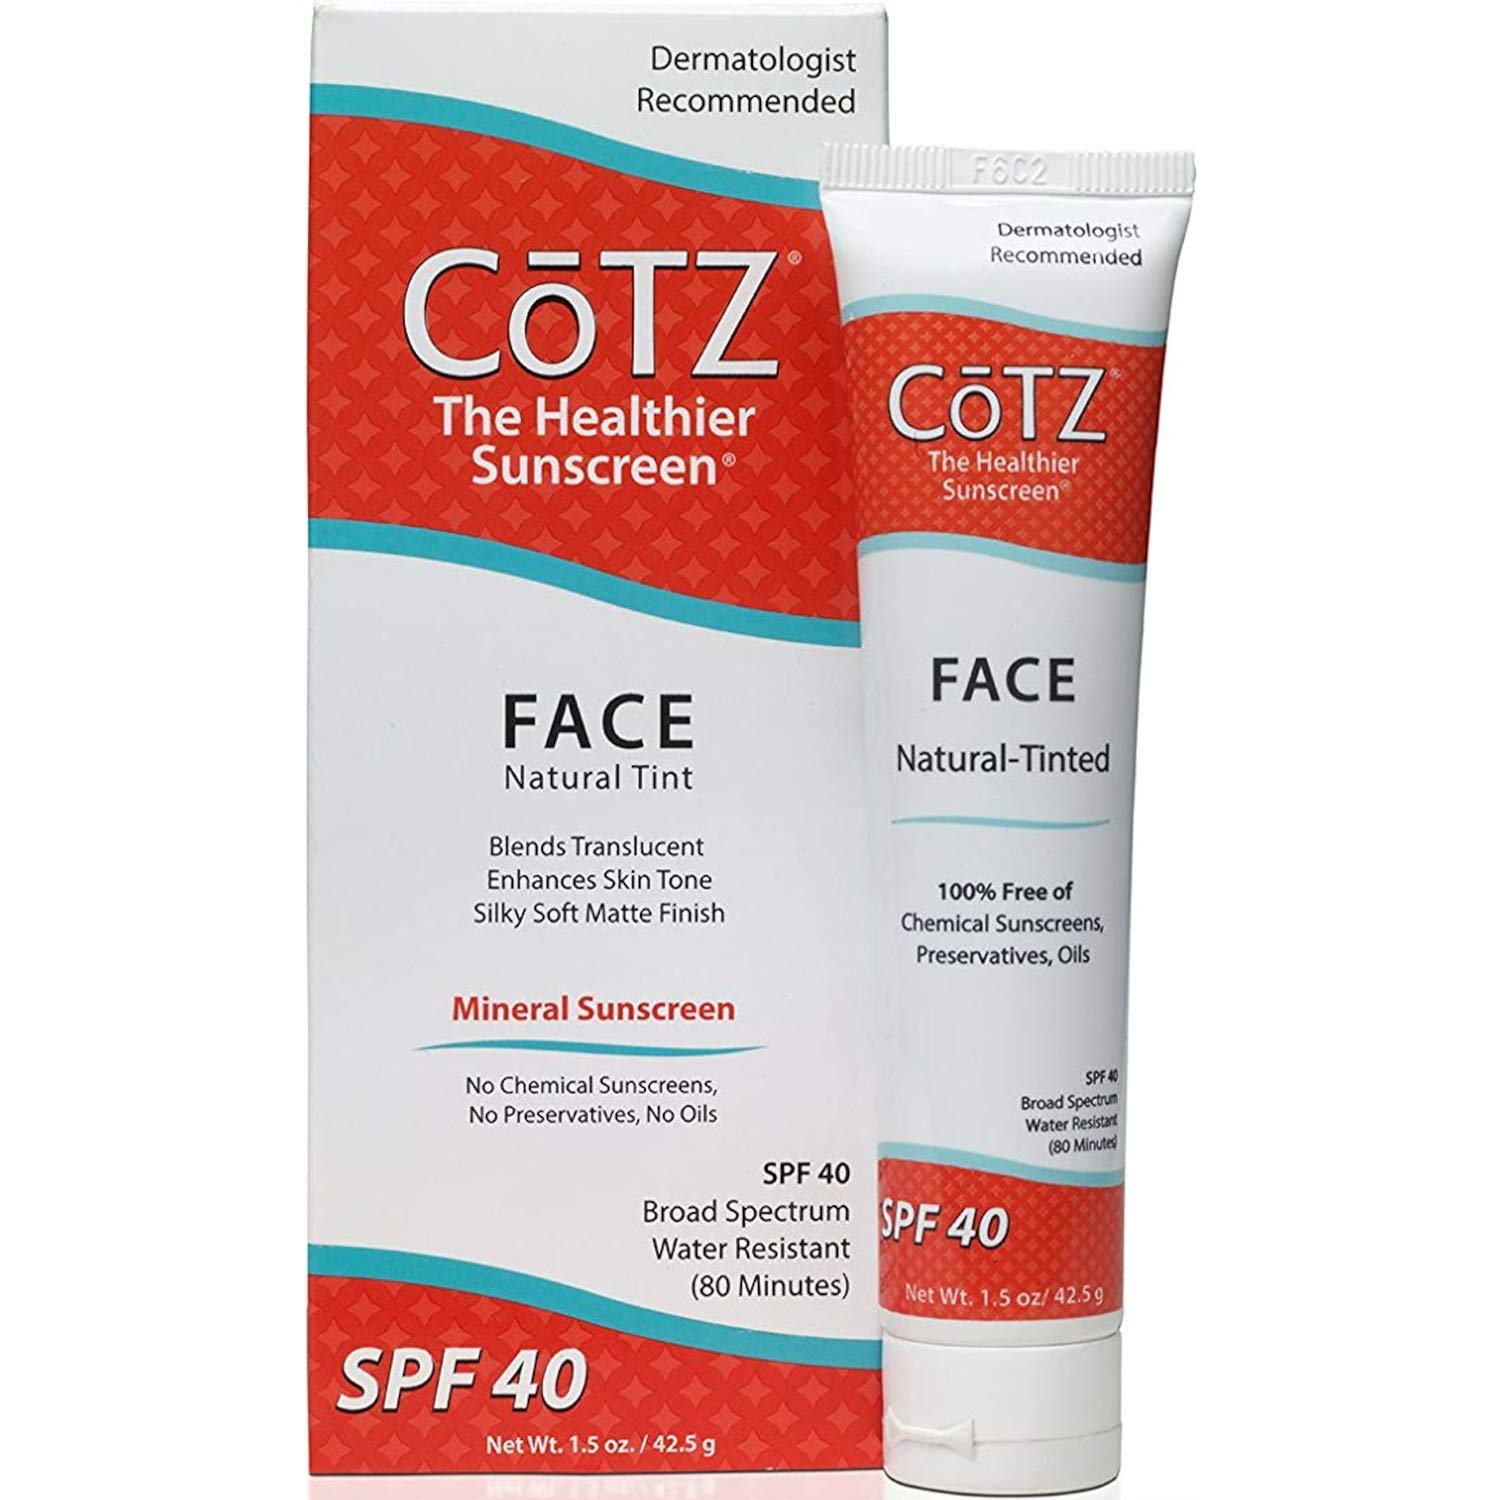 Cotz Face Sunscreen Natural Skin Tone SPF 40 1.5 oz Pack of 2